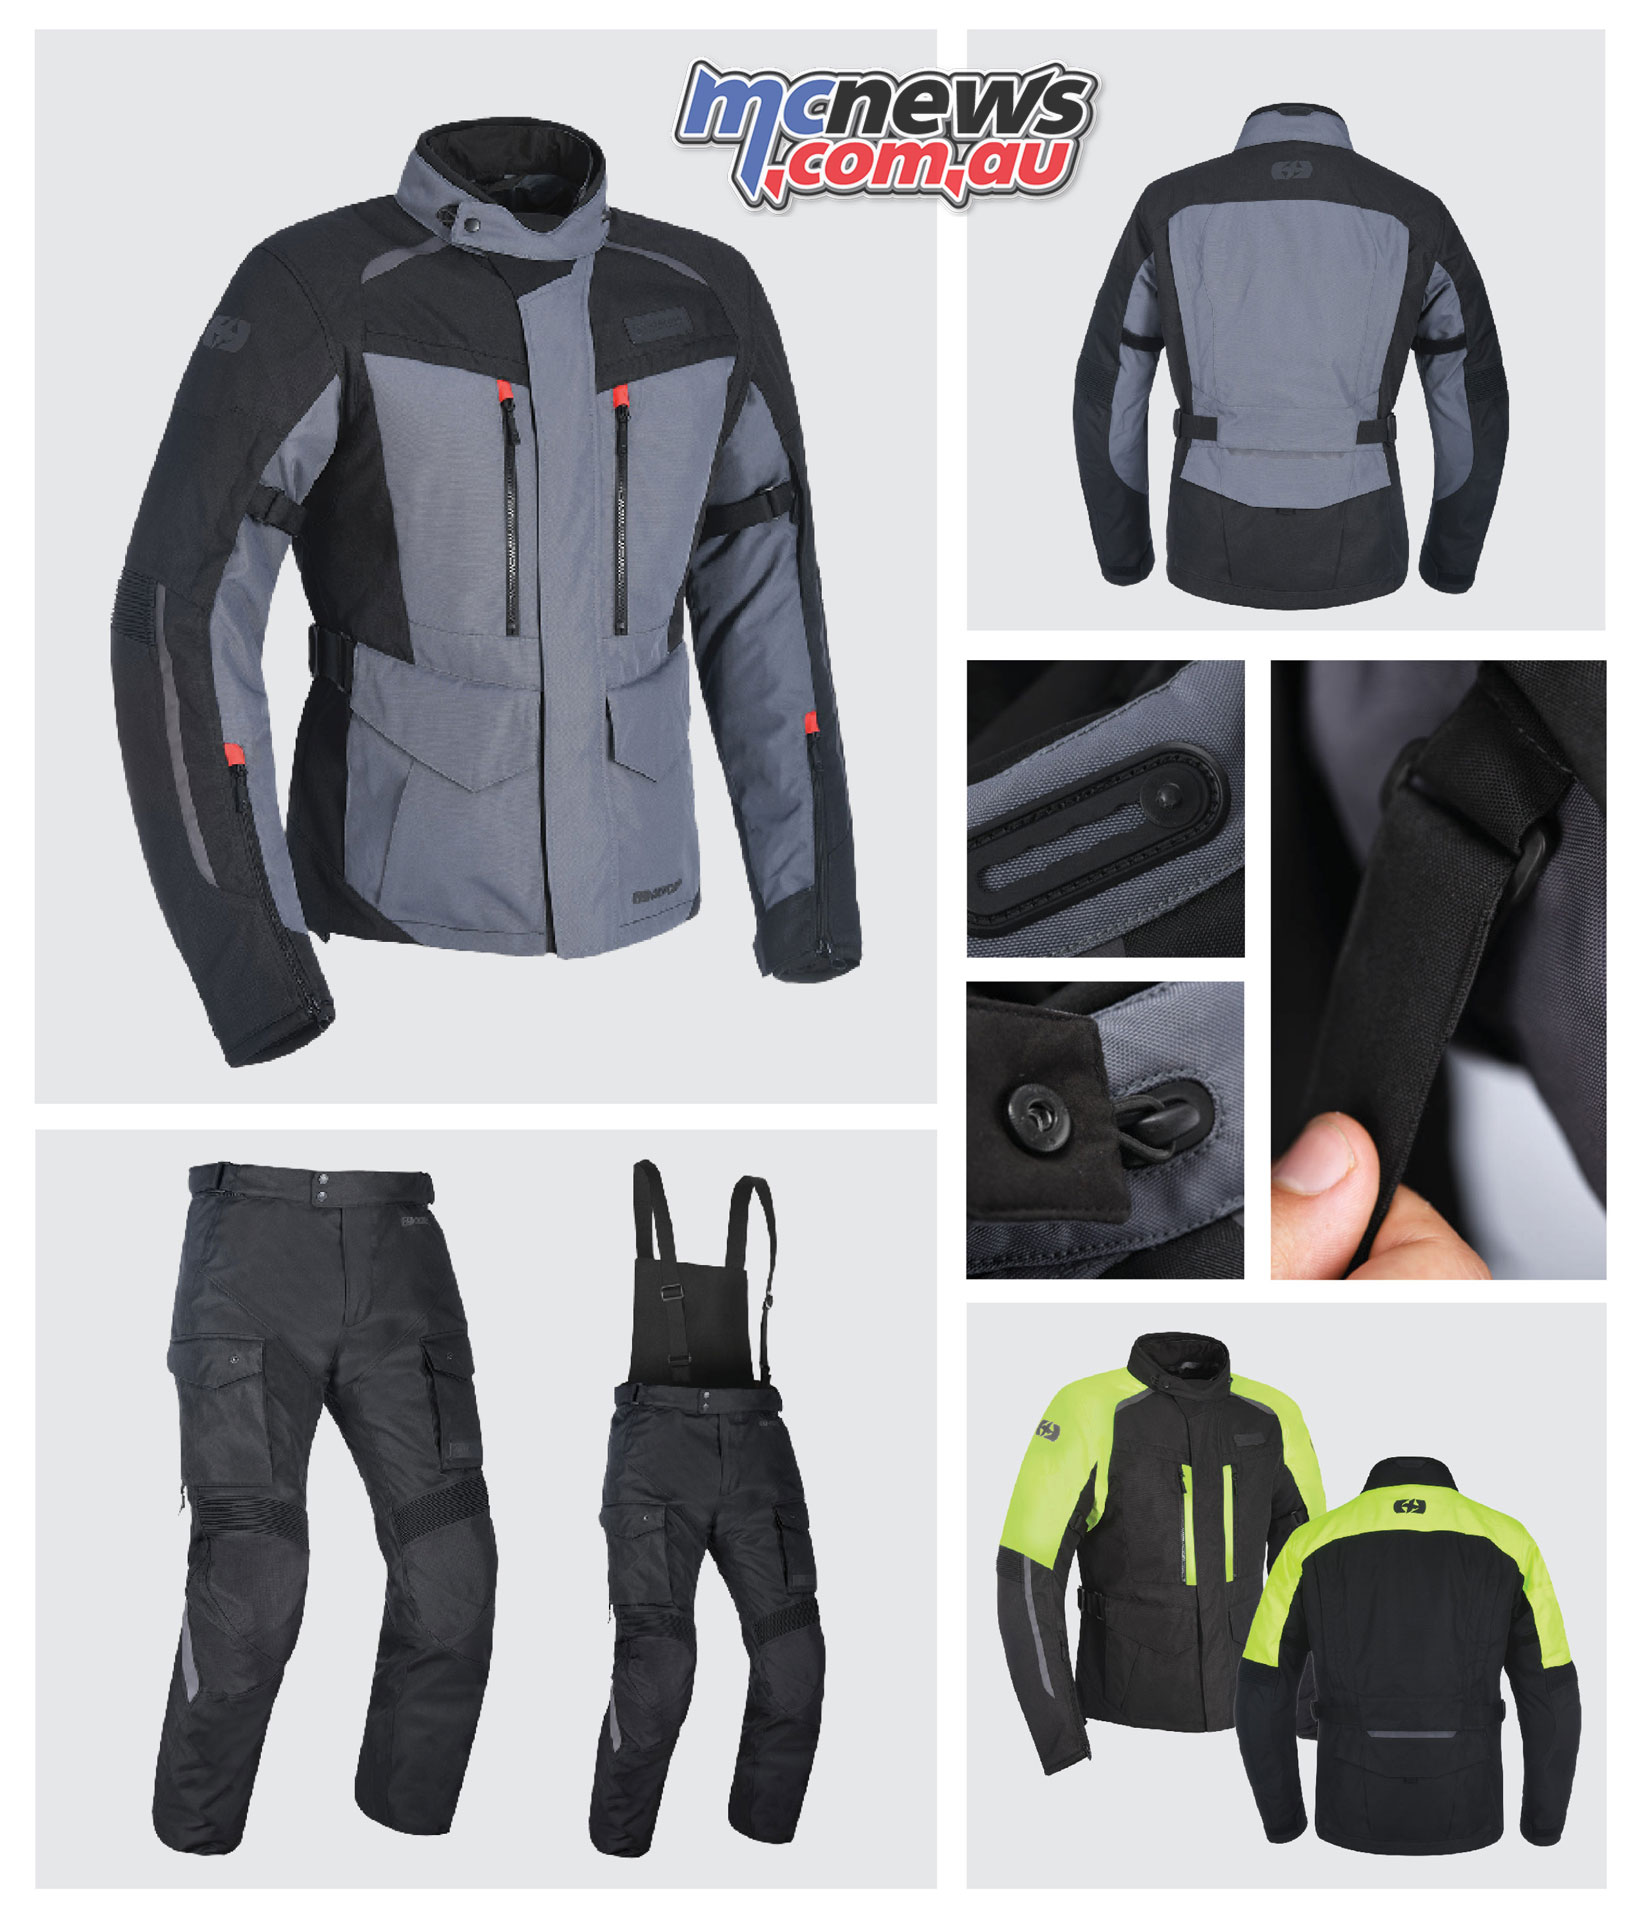 Oxford Continental Adventure Gear Features